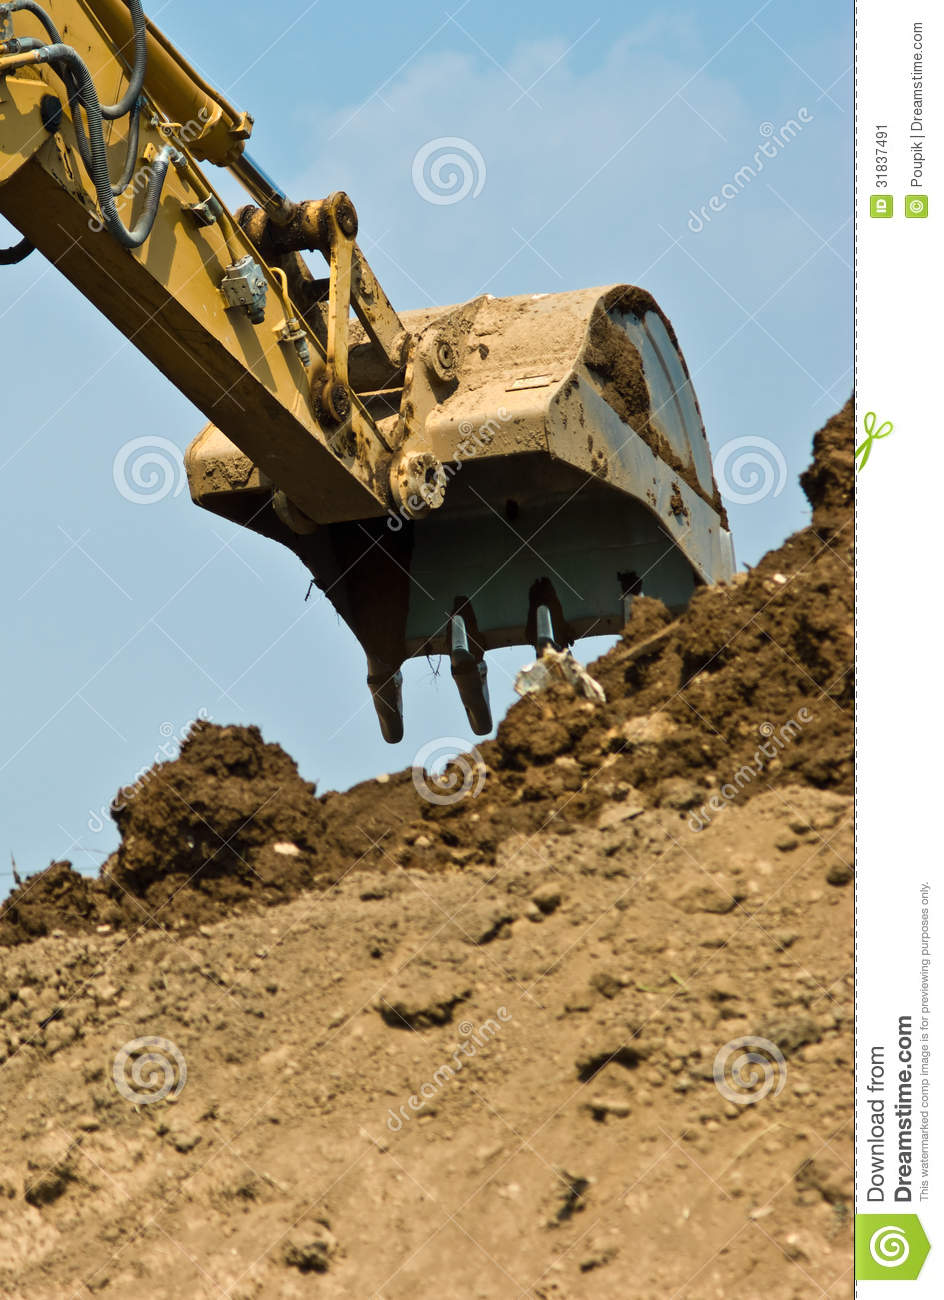 Bulldozer stock image image 31837491 for Digging ground dream meaning